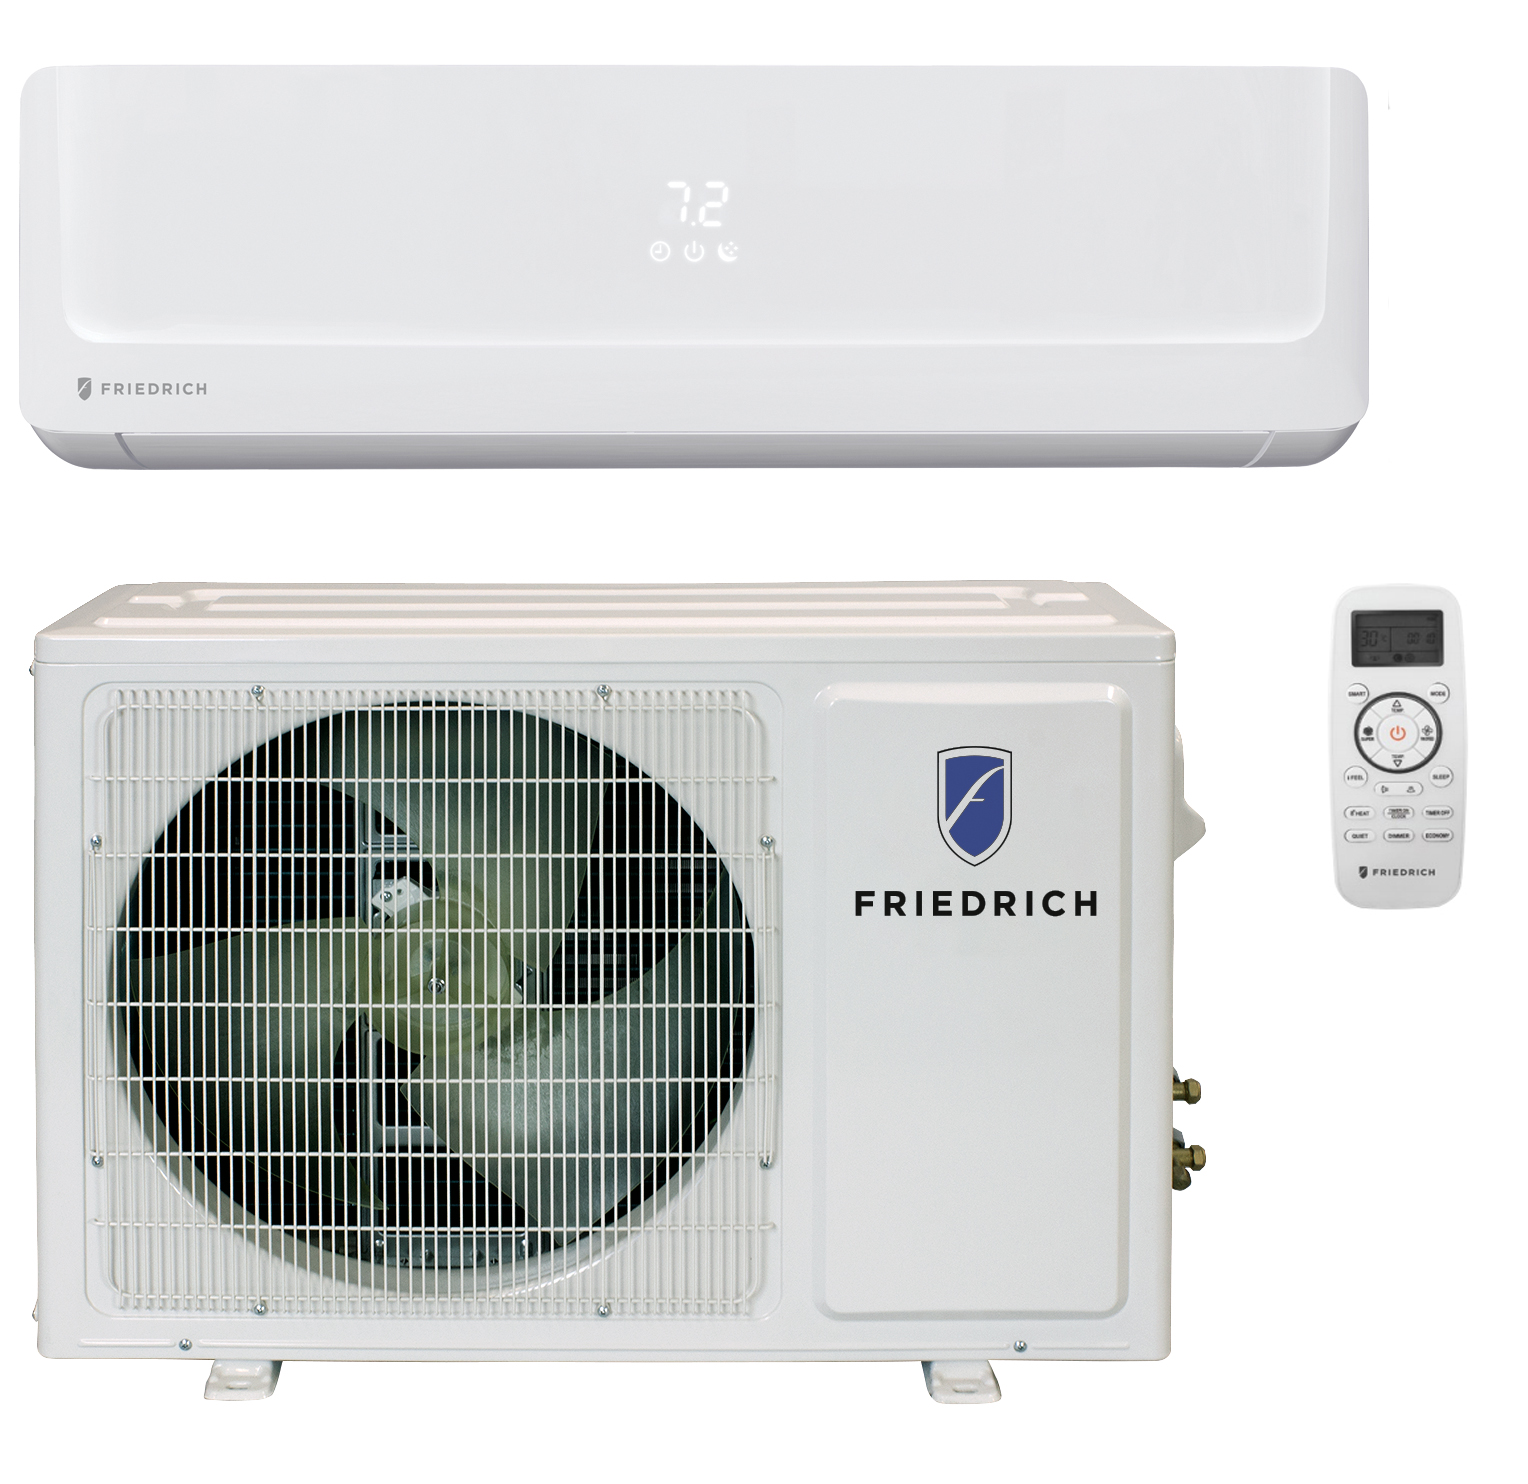 Friedrich FPHW363A 36000 BTU Floating Air Pro Series Single Zone Mini Split with Built-In WiFi - Heat and Cool - Energy Star